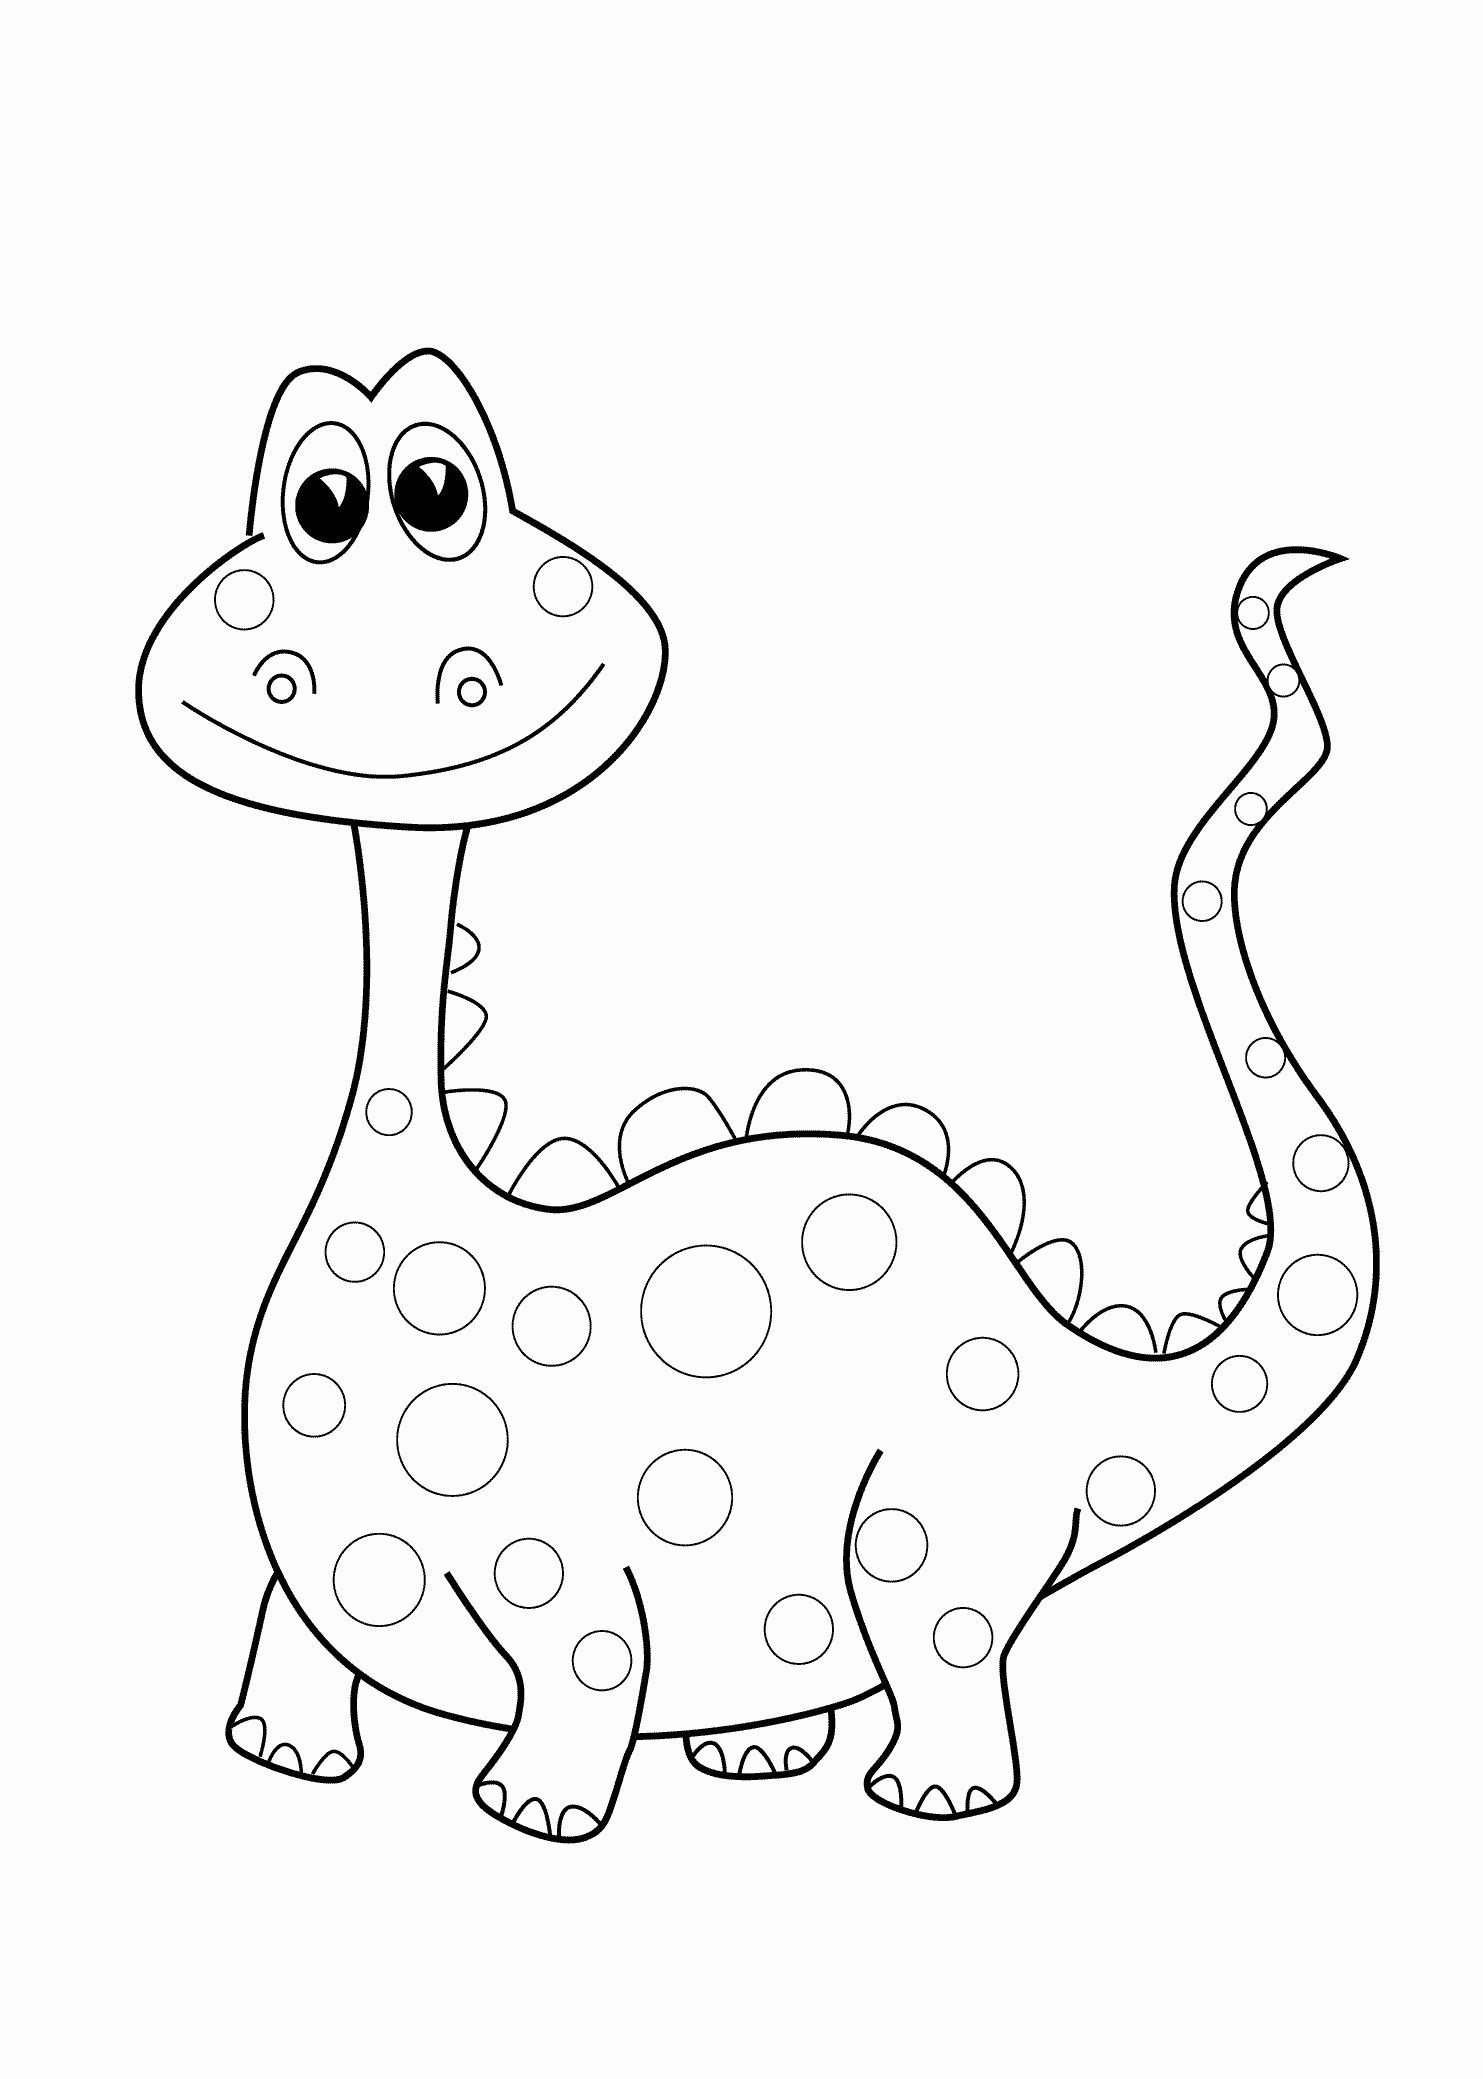 Free T Rex Coloring Pages New 45 Baby Dinosaur Coloring Pages Preschool Coloring Pages Dinosaur Coloring Pages Dinosaur Coloring Sheets